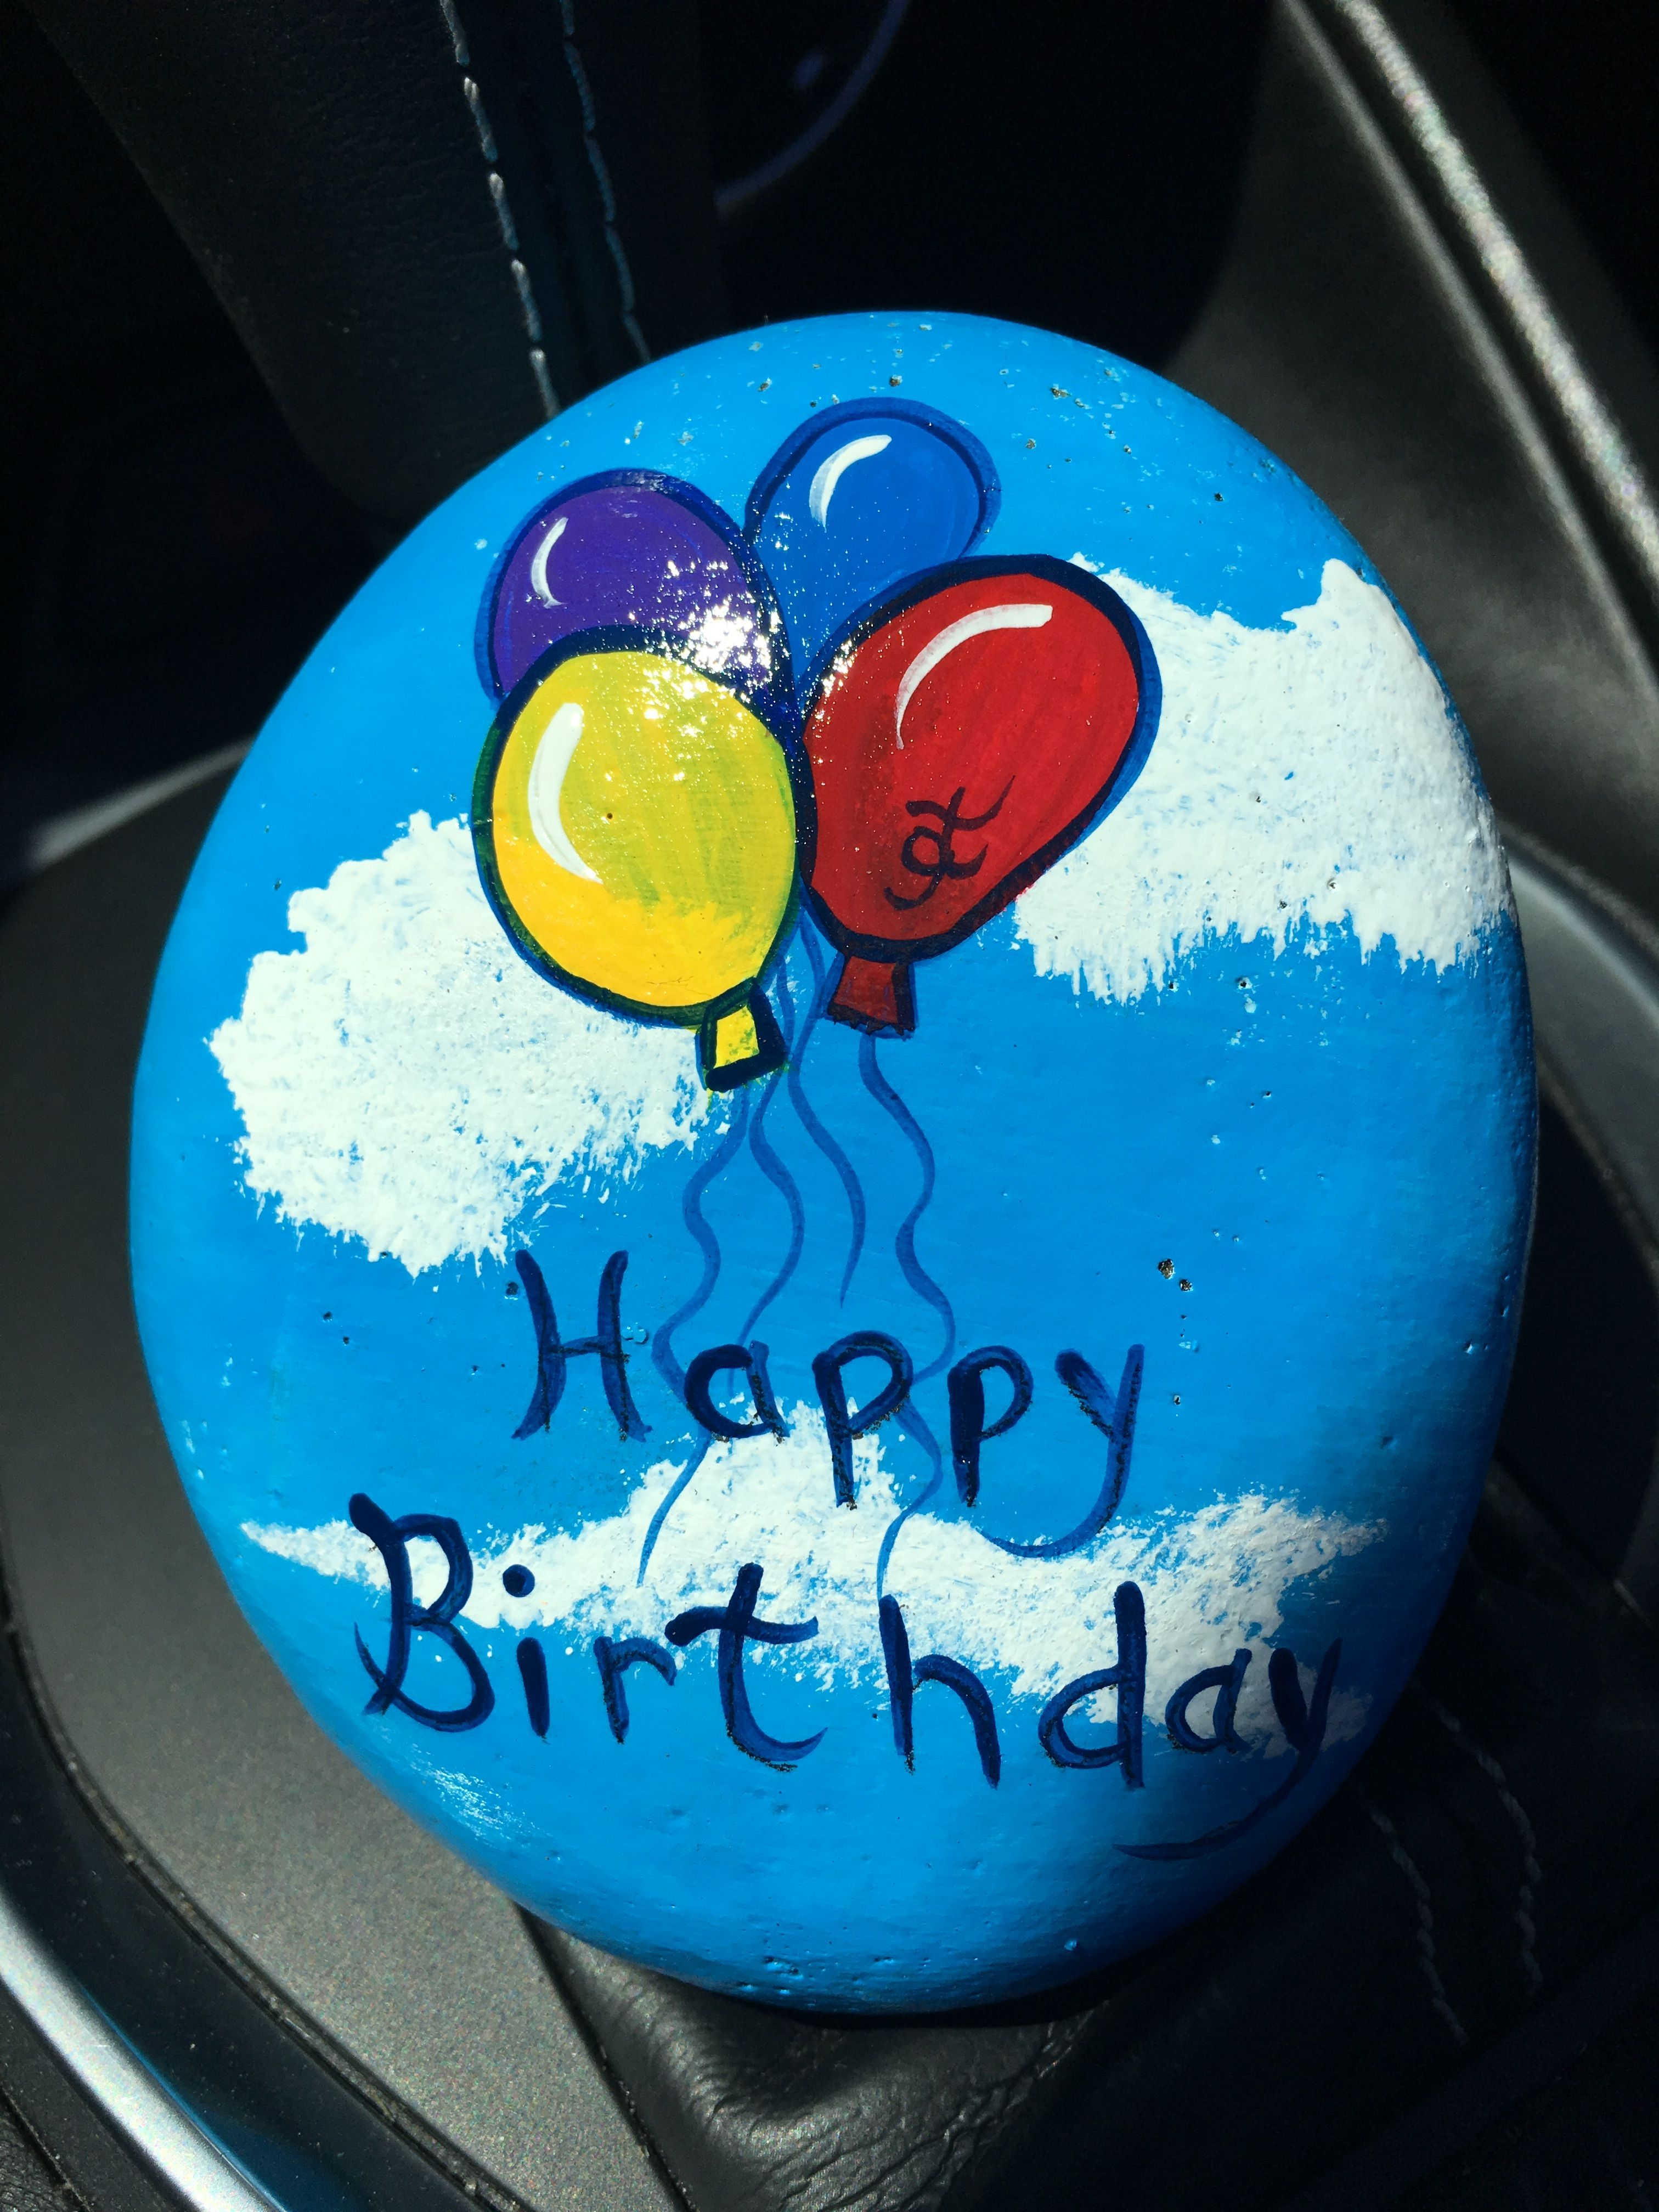 Painted Rock Ideas Do You Need Rock Painting Ideas For Spreading Rocks Around Your Neighborhood Or The Kindnes Rock Decor Painted Rocks Rock Painting Designs